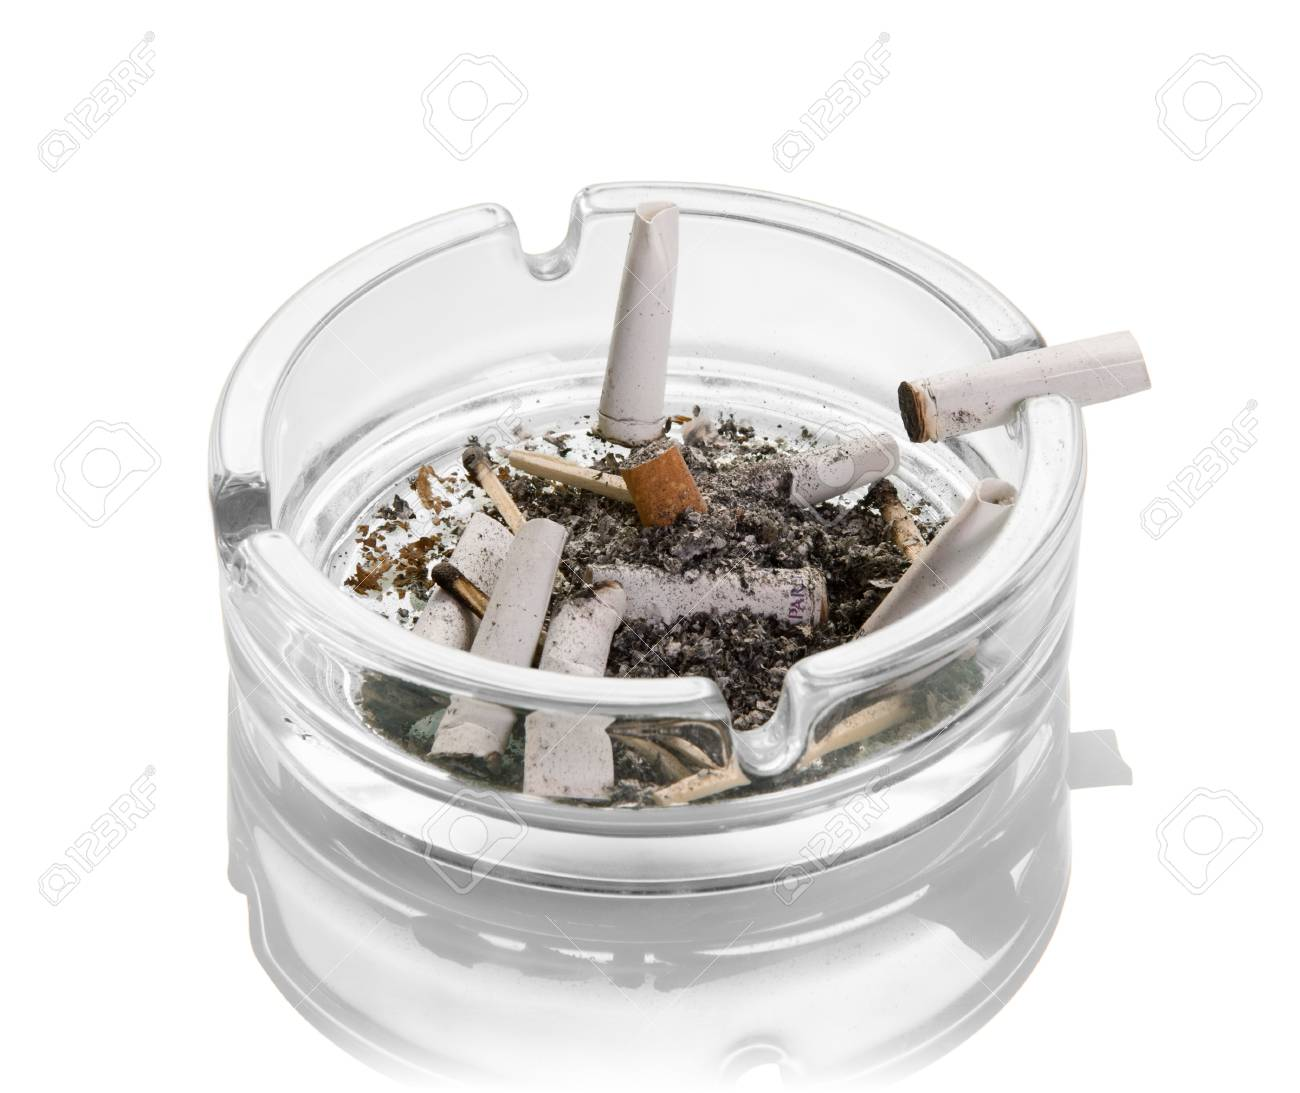 Cigarette butts, ashes, burnt matches in a glass ashtray isolated on white background. Close-up - 90684623